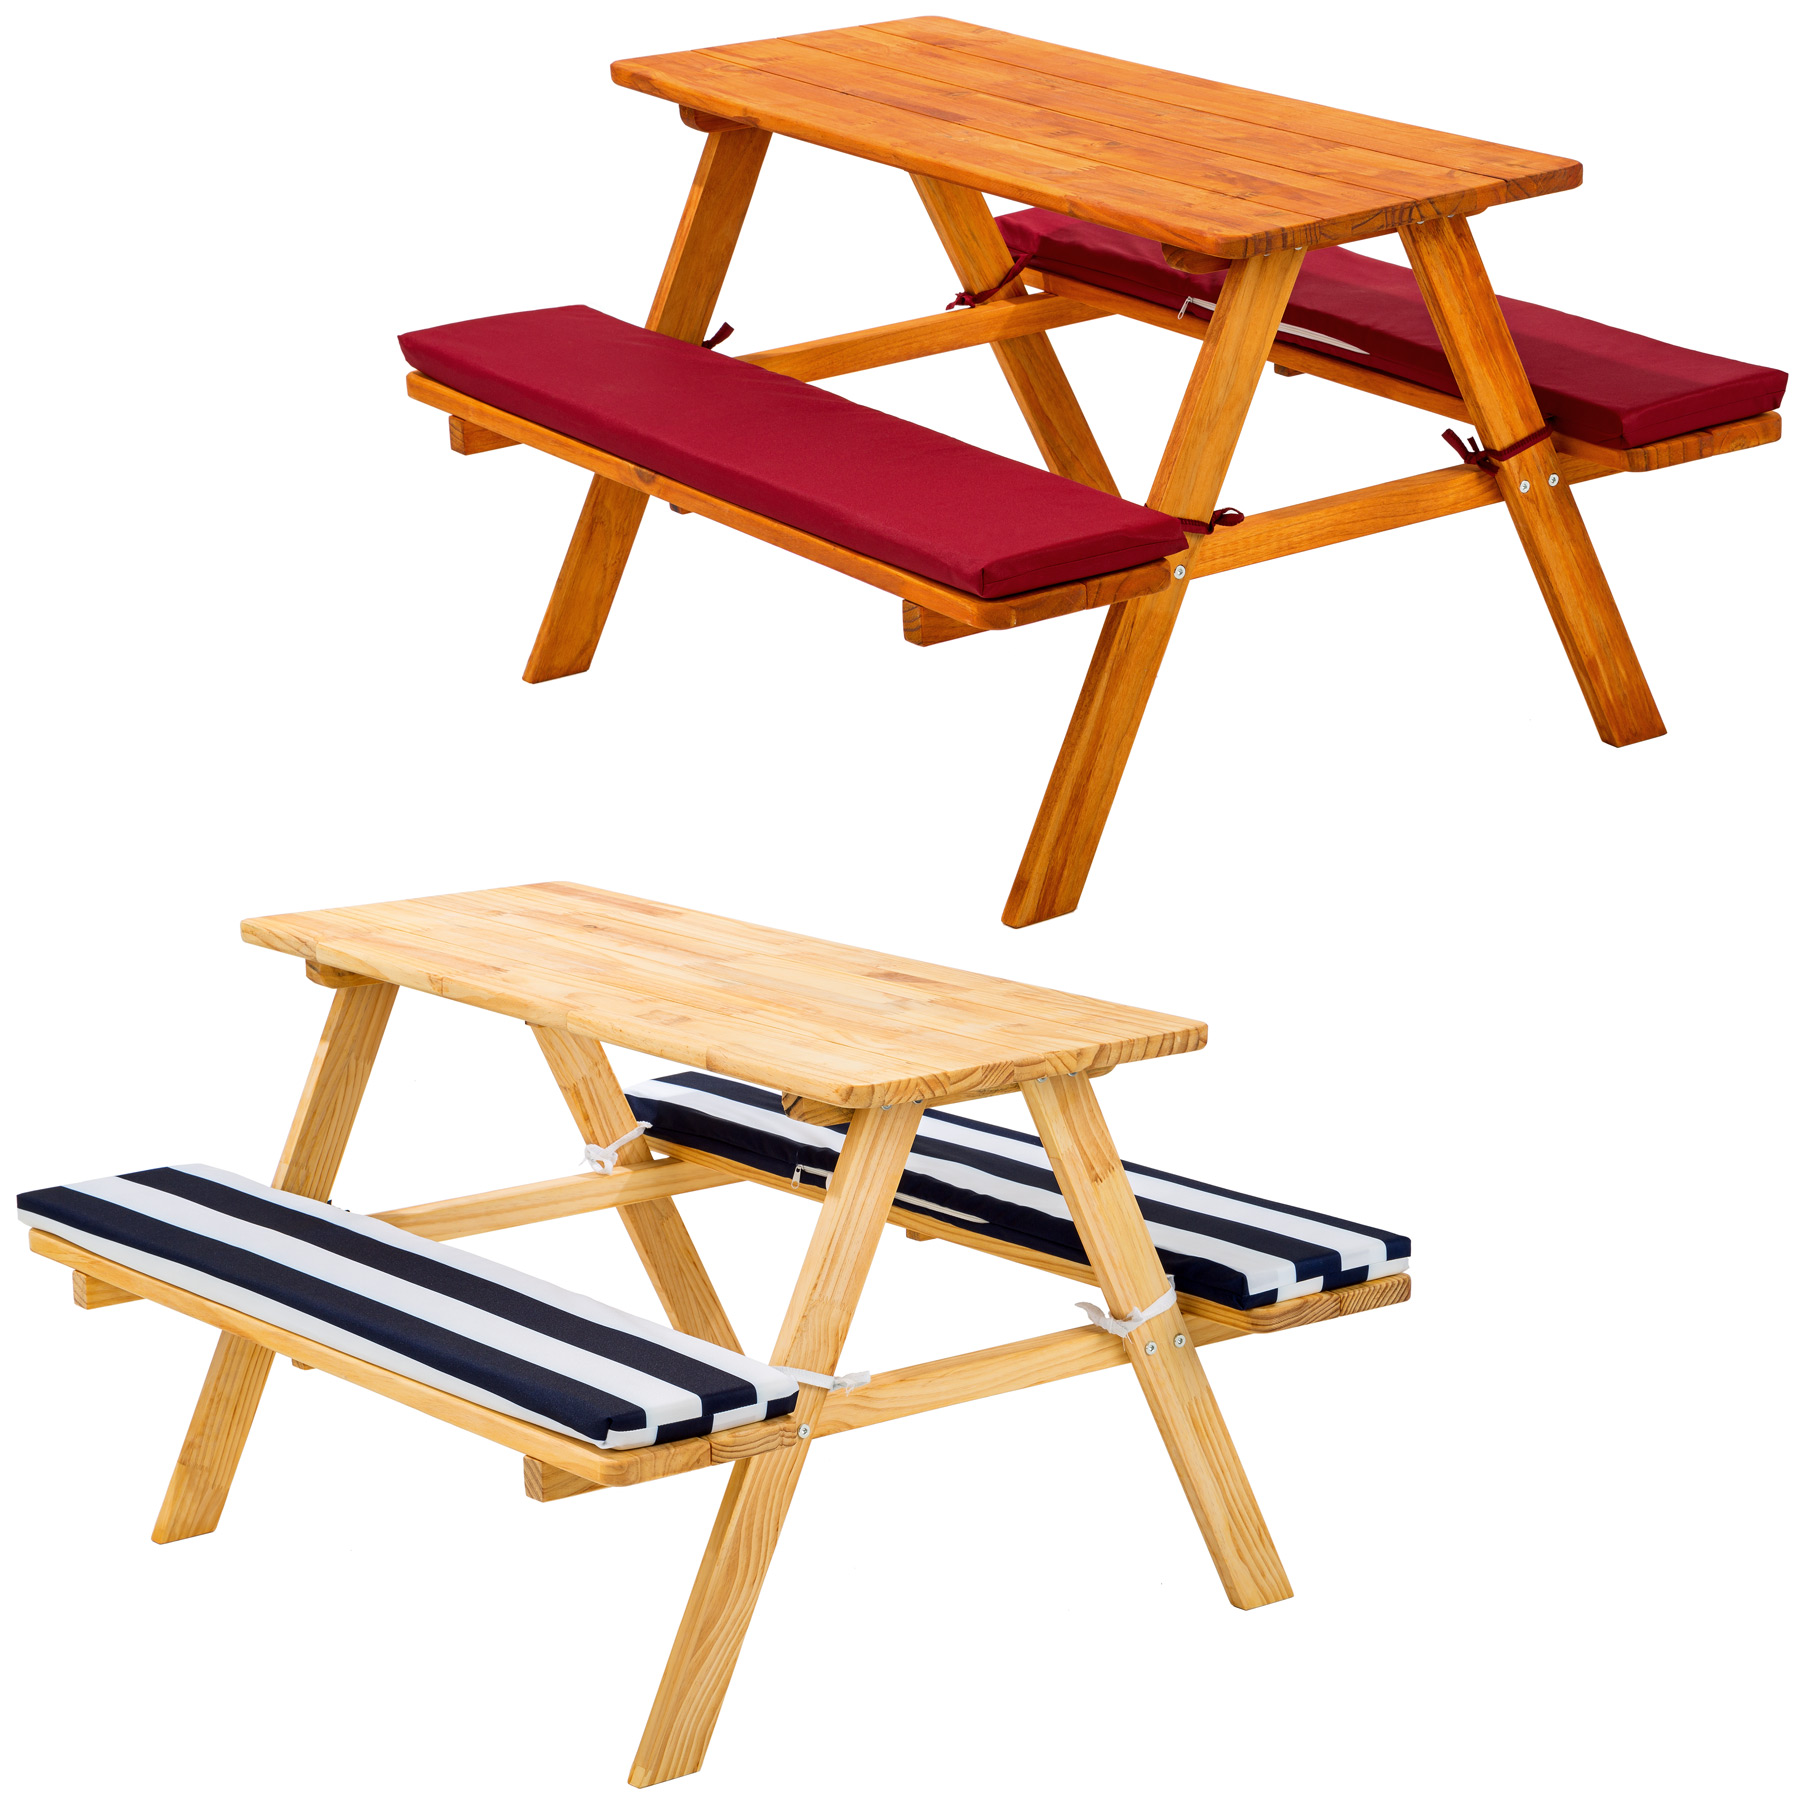 kids picnic table bench set childrens wood garden. Black Bedroom Furniture Sets. Home Design Ideas